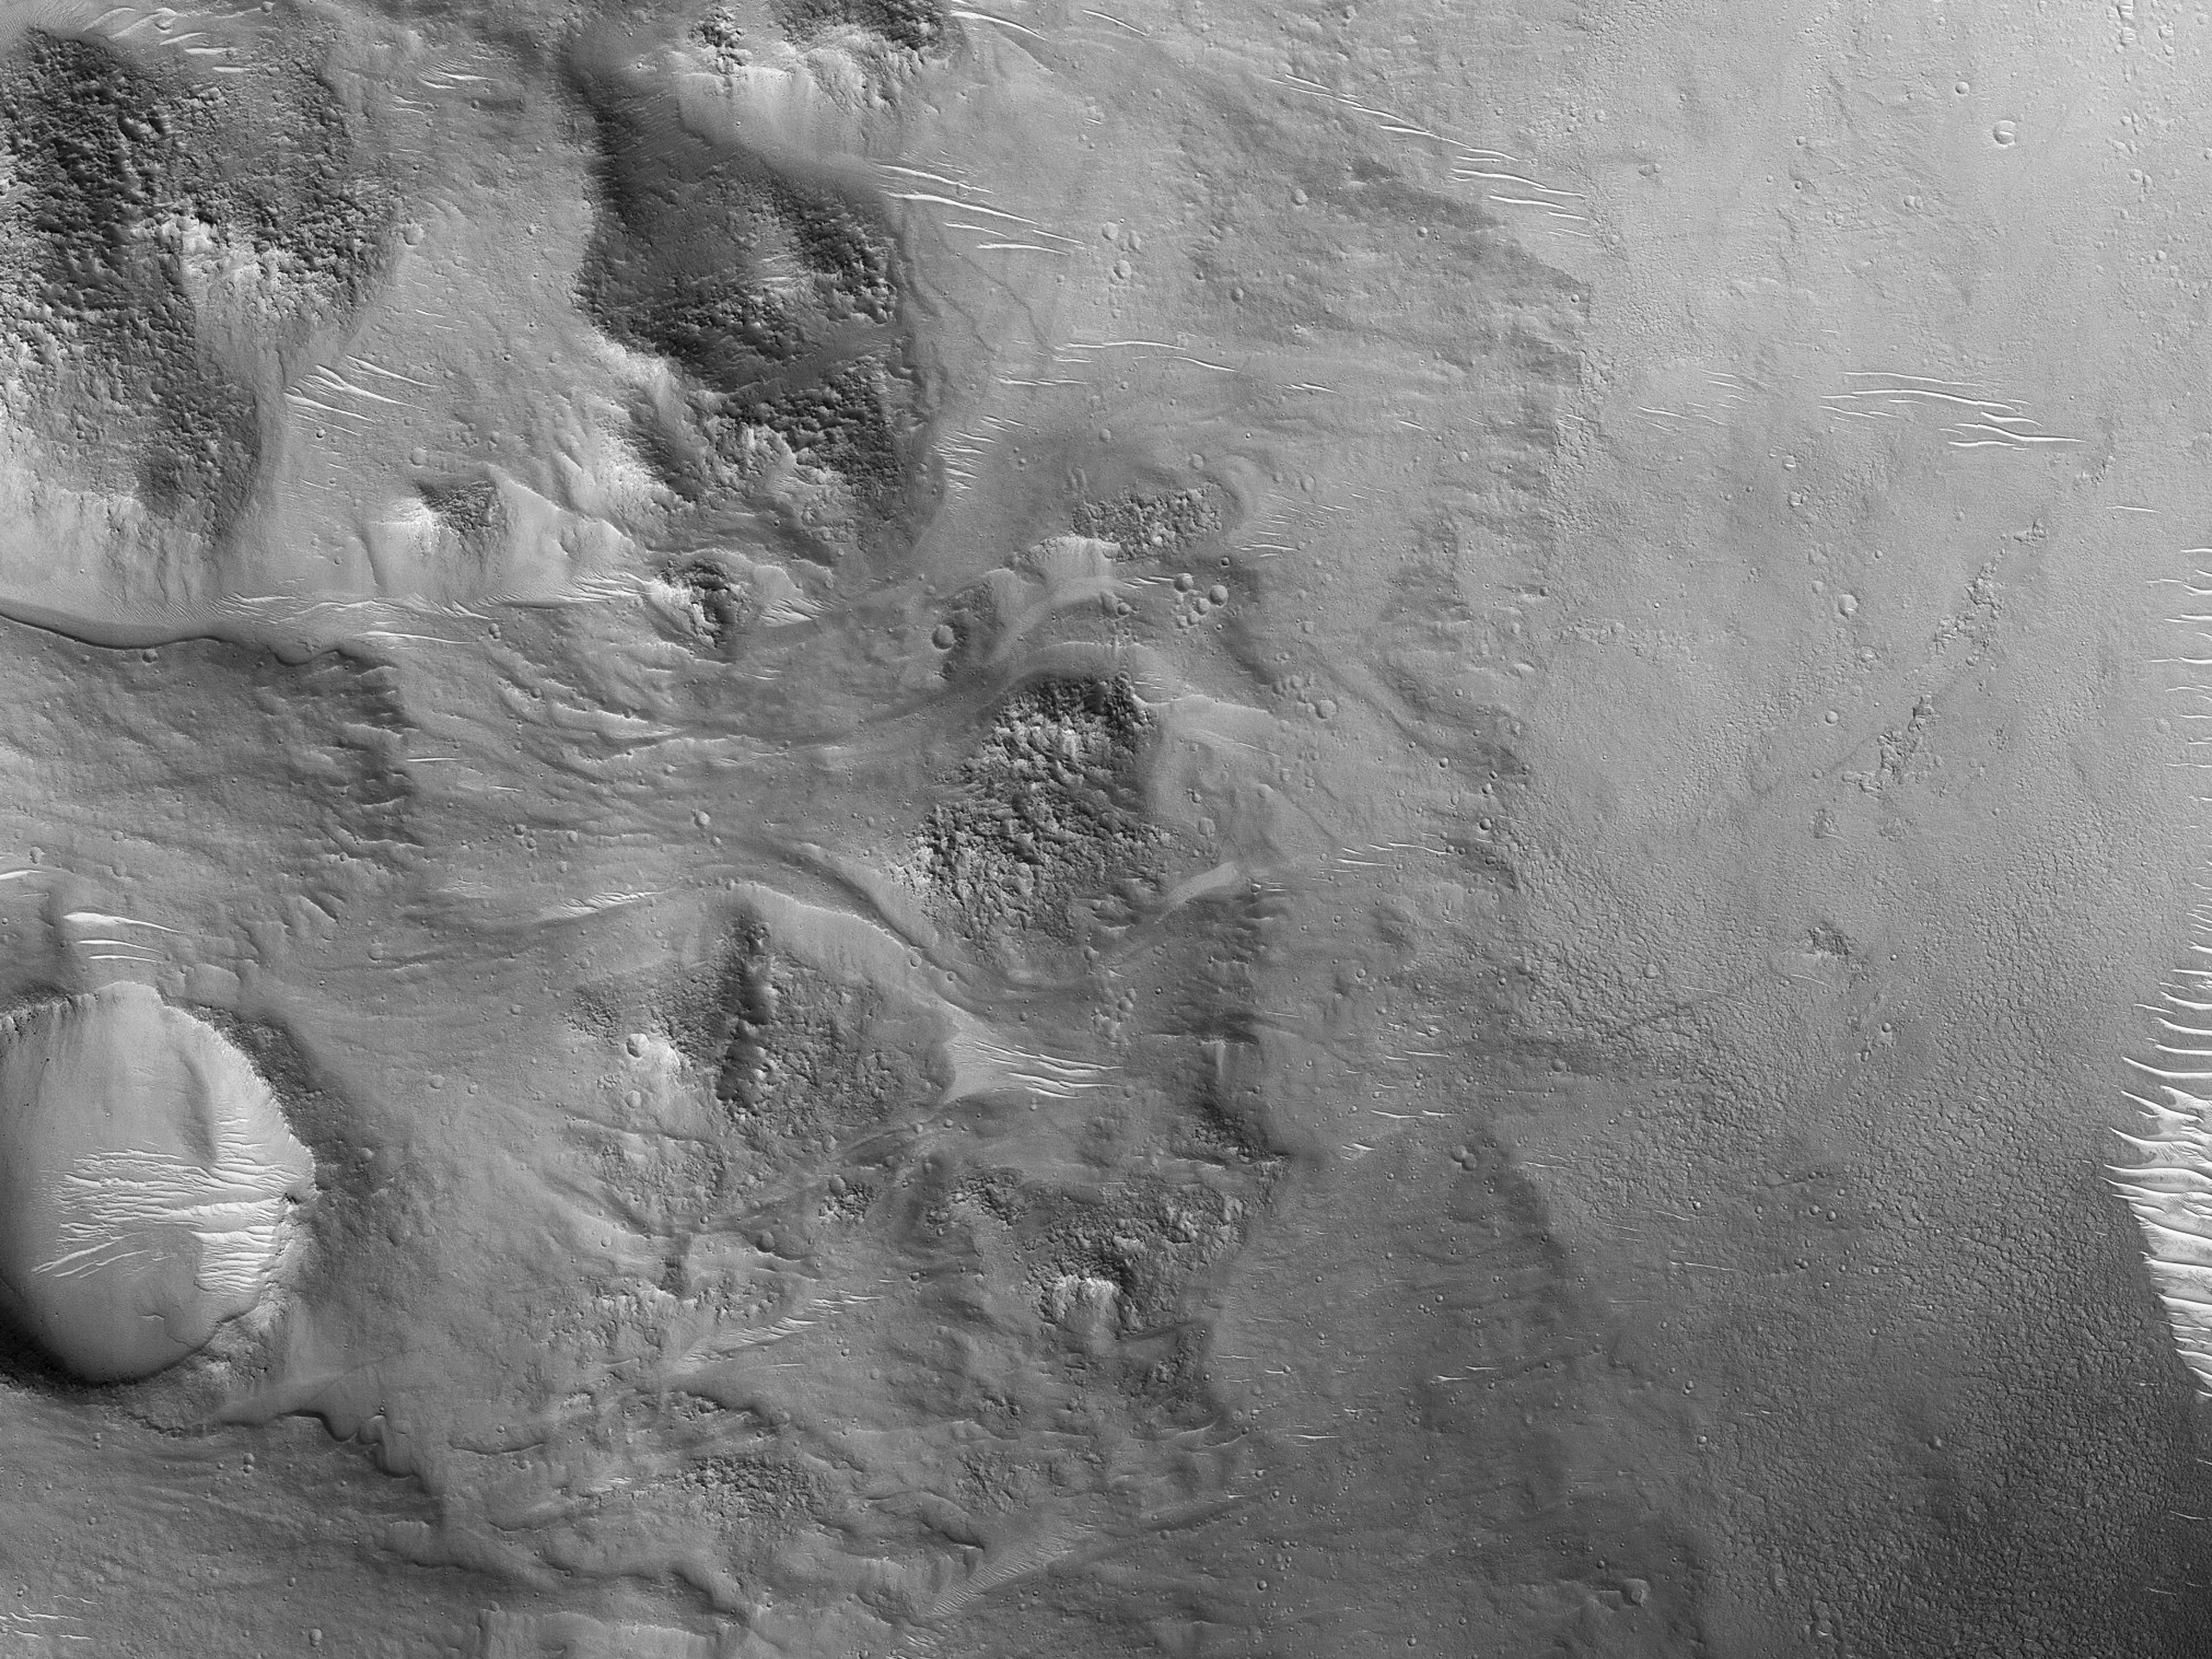 Flows in a Crater